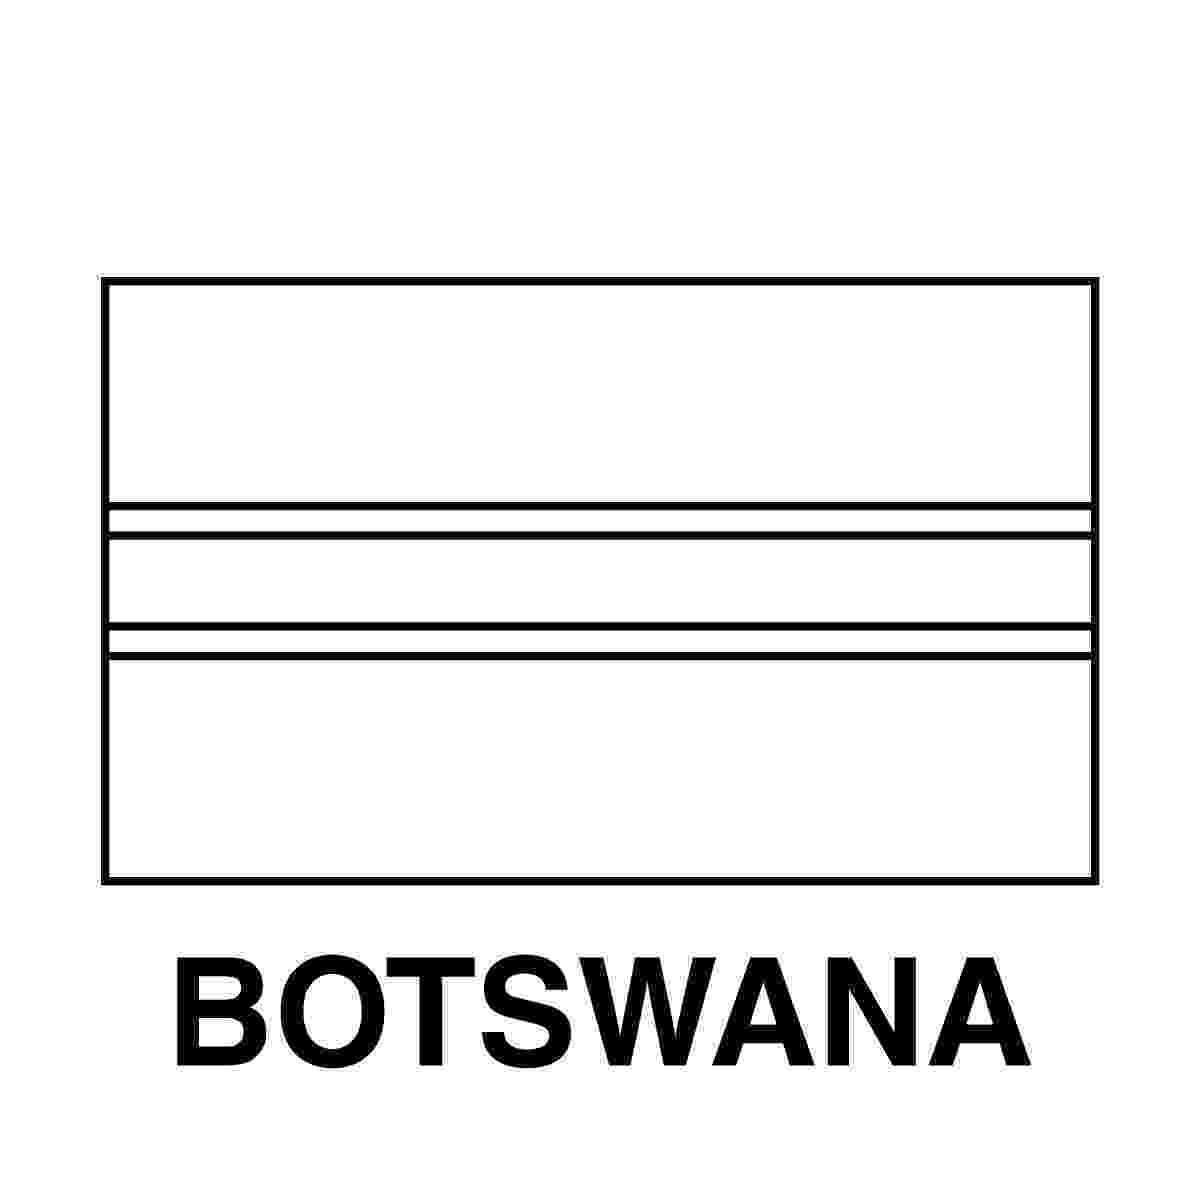 blank south african flag south african flag clipart black and white clipground south african blank flag